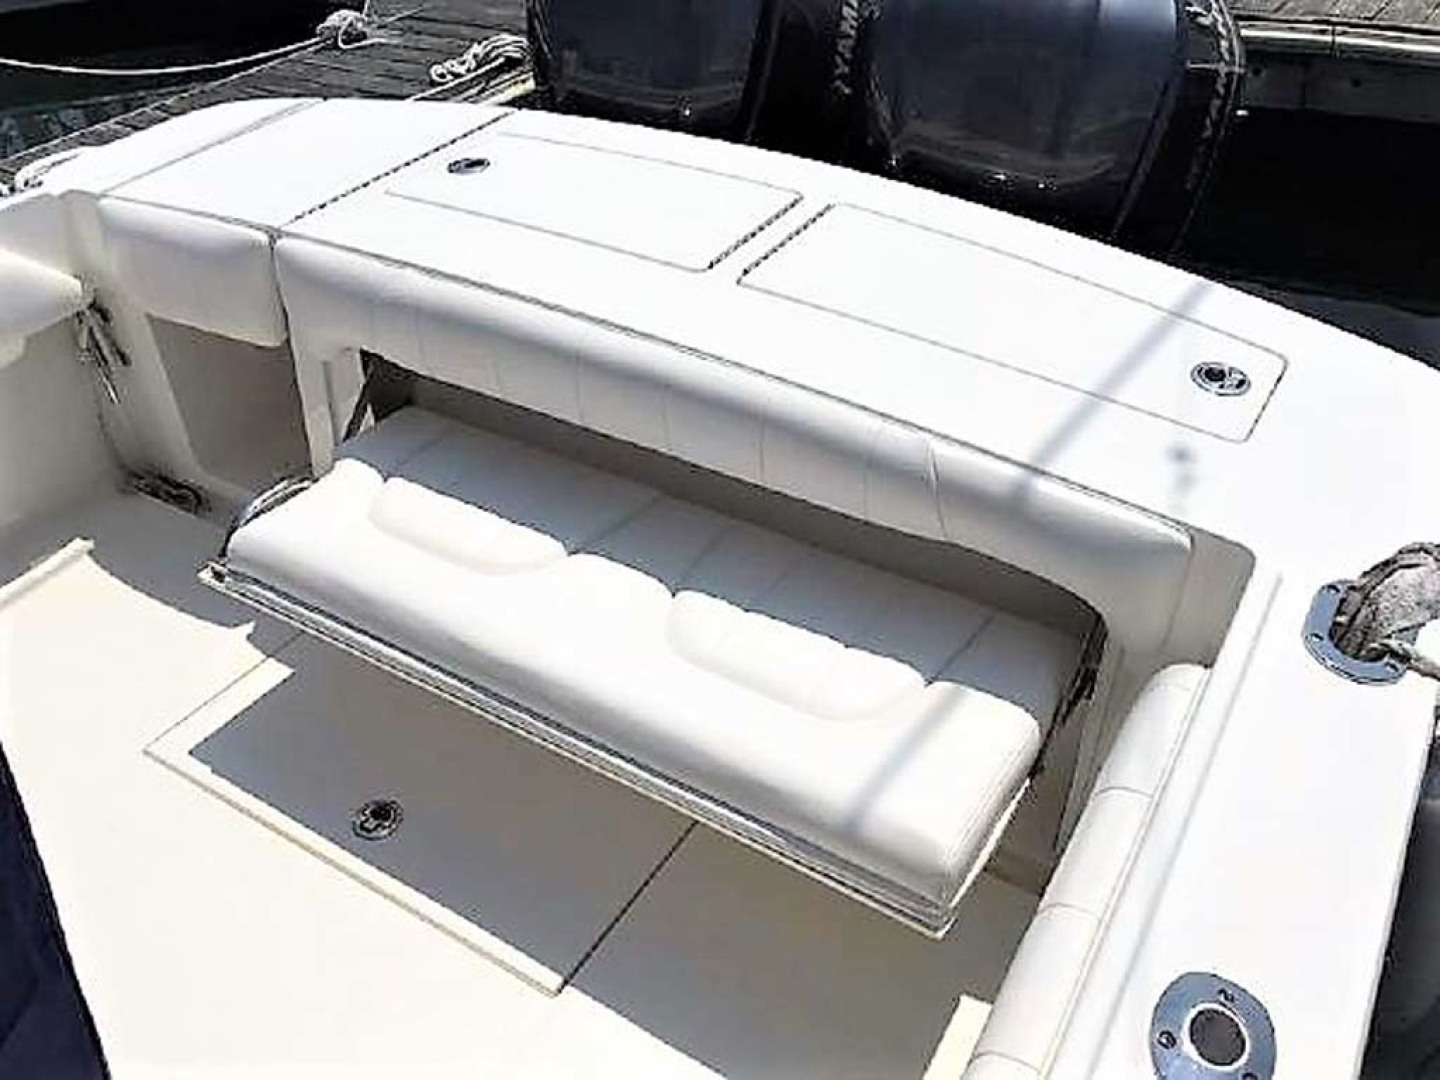 Regulator-28 FS Center Console 2014 -Mamaroneck-New York-United States-Fold-down Transom Seat-1089419 | Thumbnail